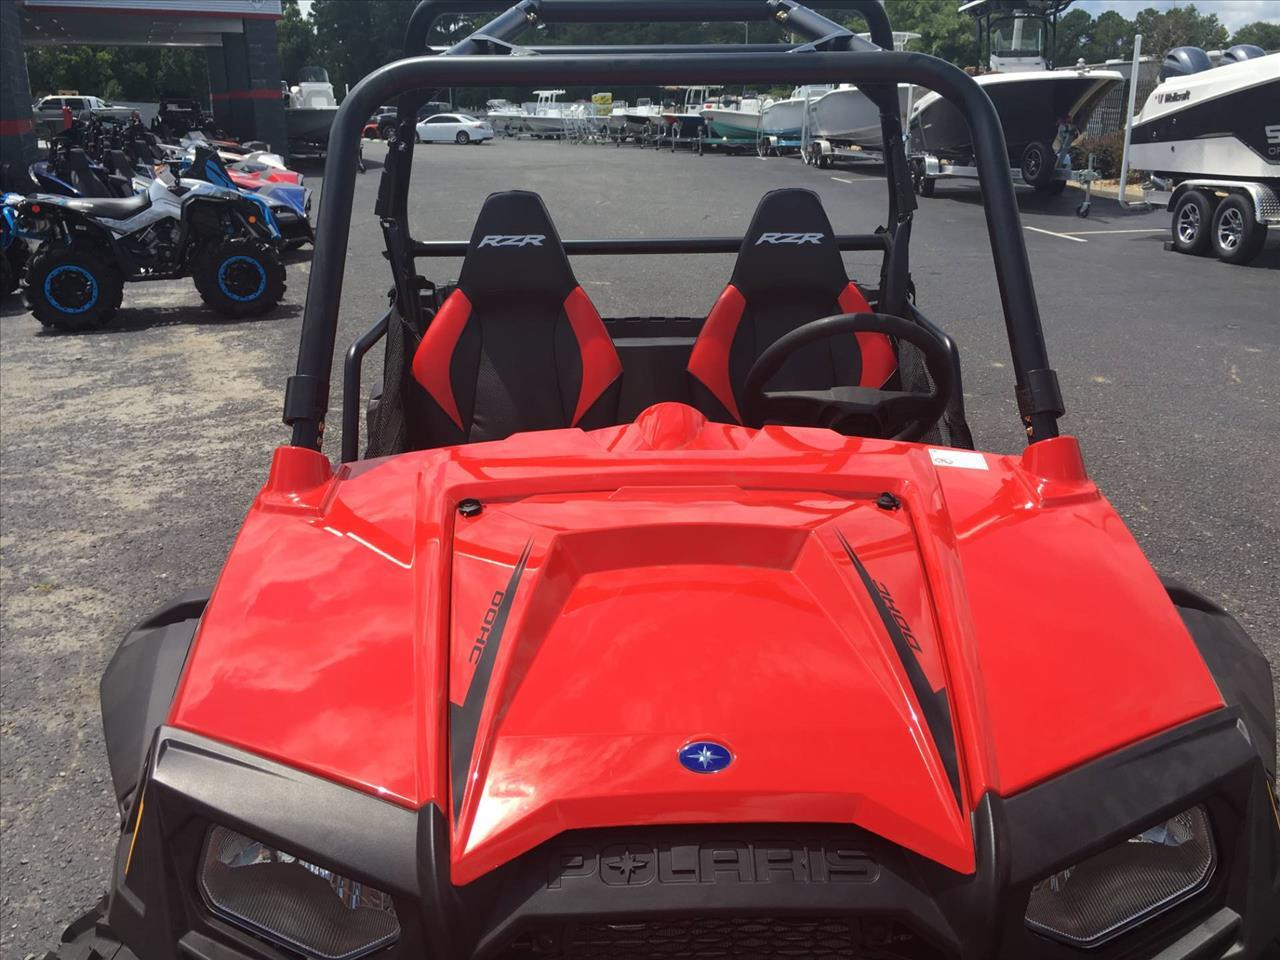 2017 Polaris RZR S 570 EPS for sale at Vehicle Network, LLC - Performance East, INC. in Goldsboro NC